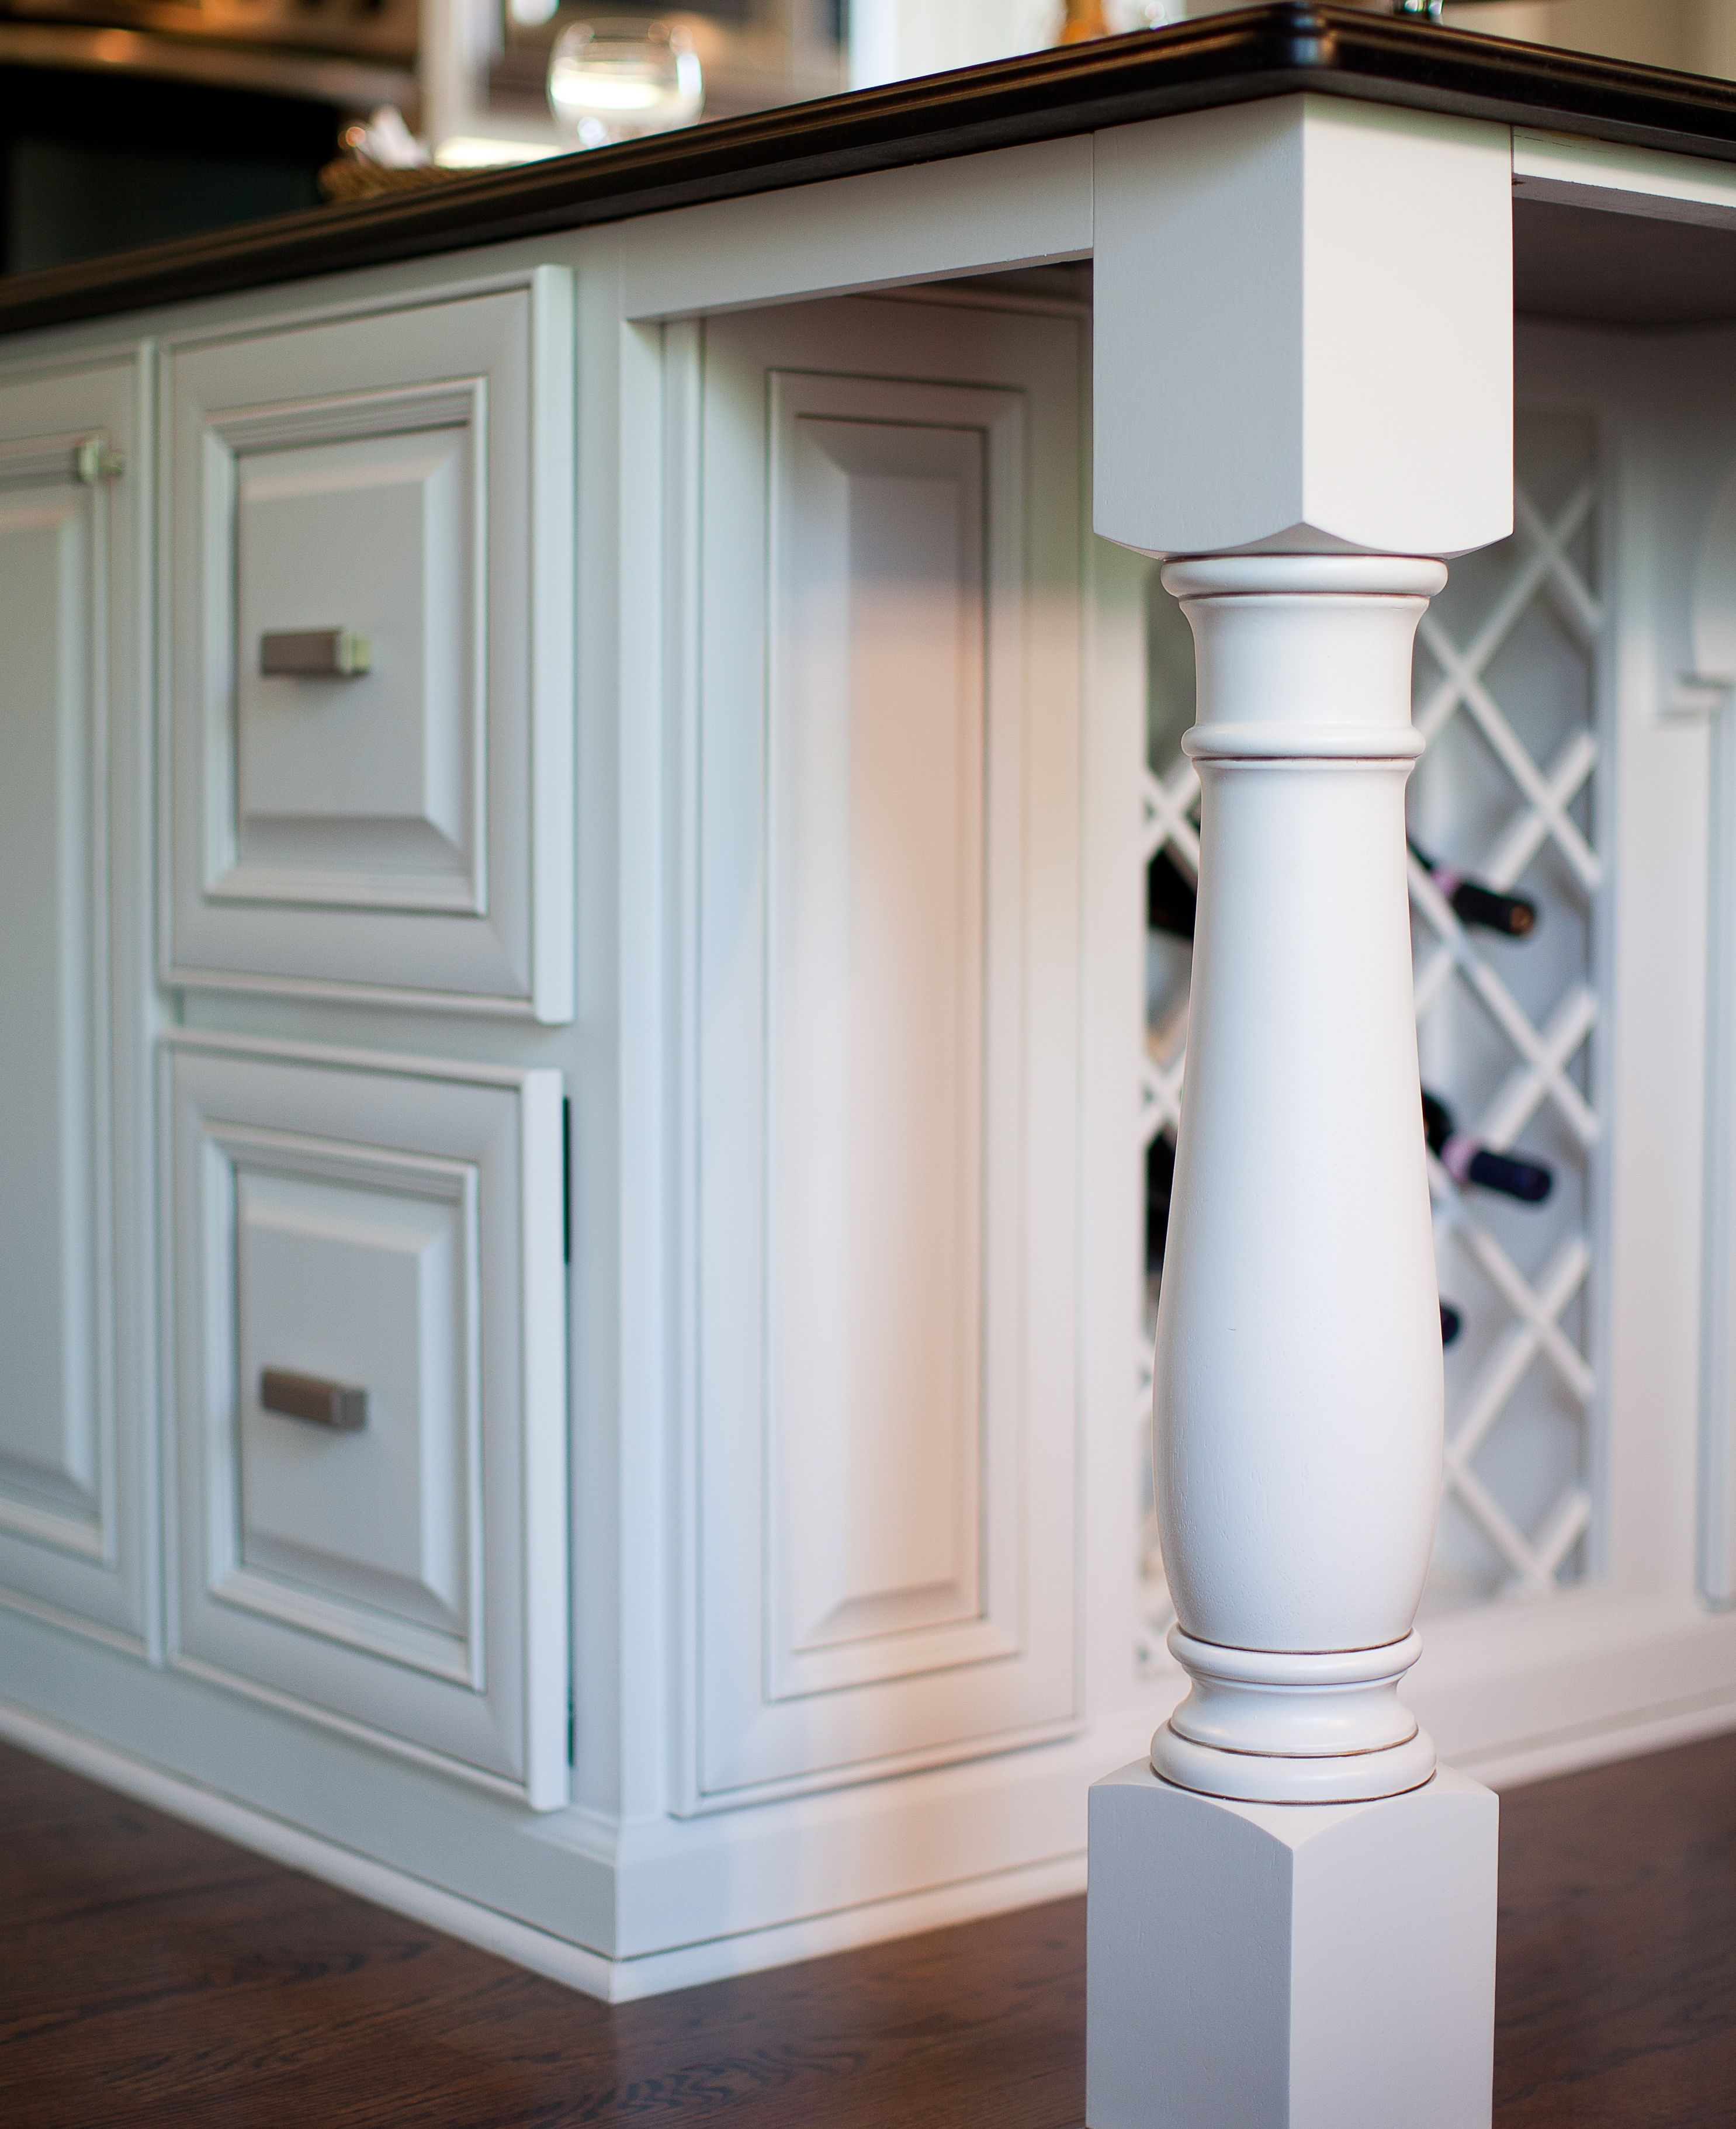 Posted Legs & Wine Rack Customize this island | Kitchen Makeover ...